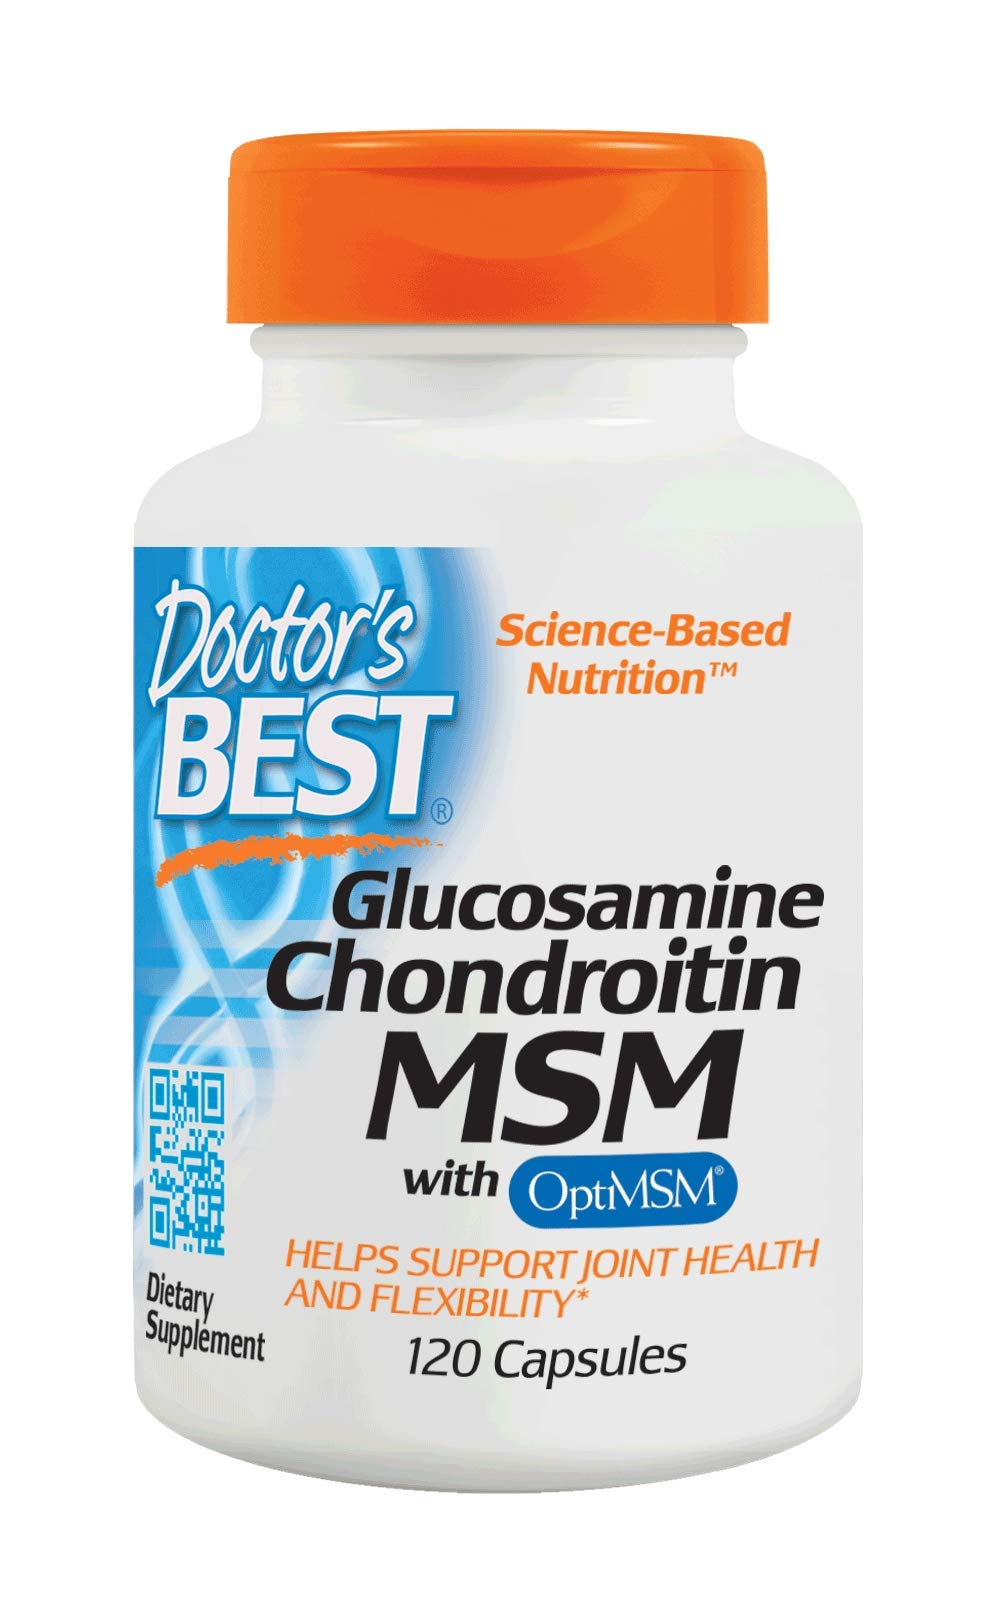 Doctor's Best Glucosamine Chondroitin MSM with OptiMSM, Joint Support, Non-GMO, Gluten Free, Soy Free, 120 Caps